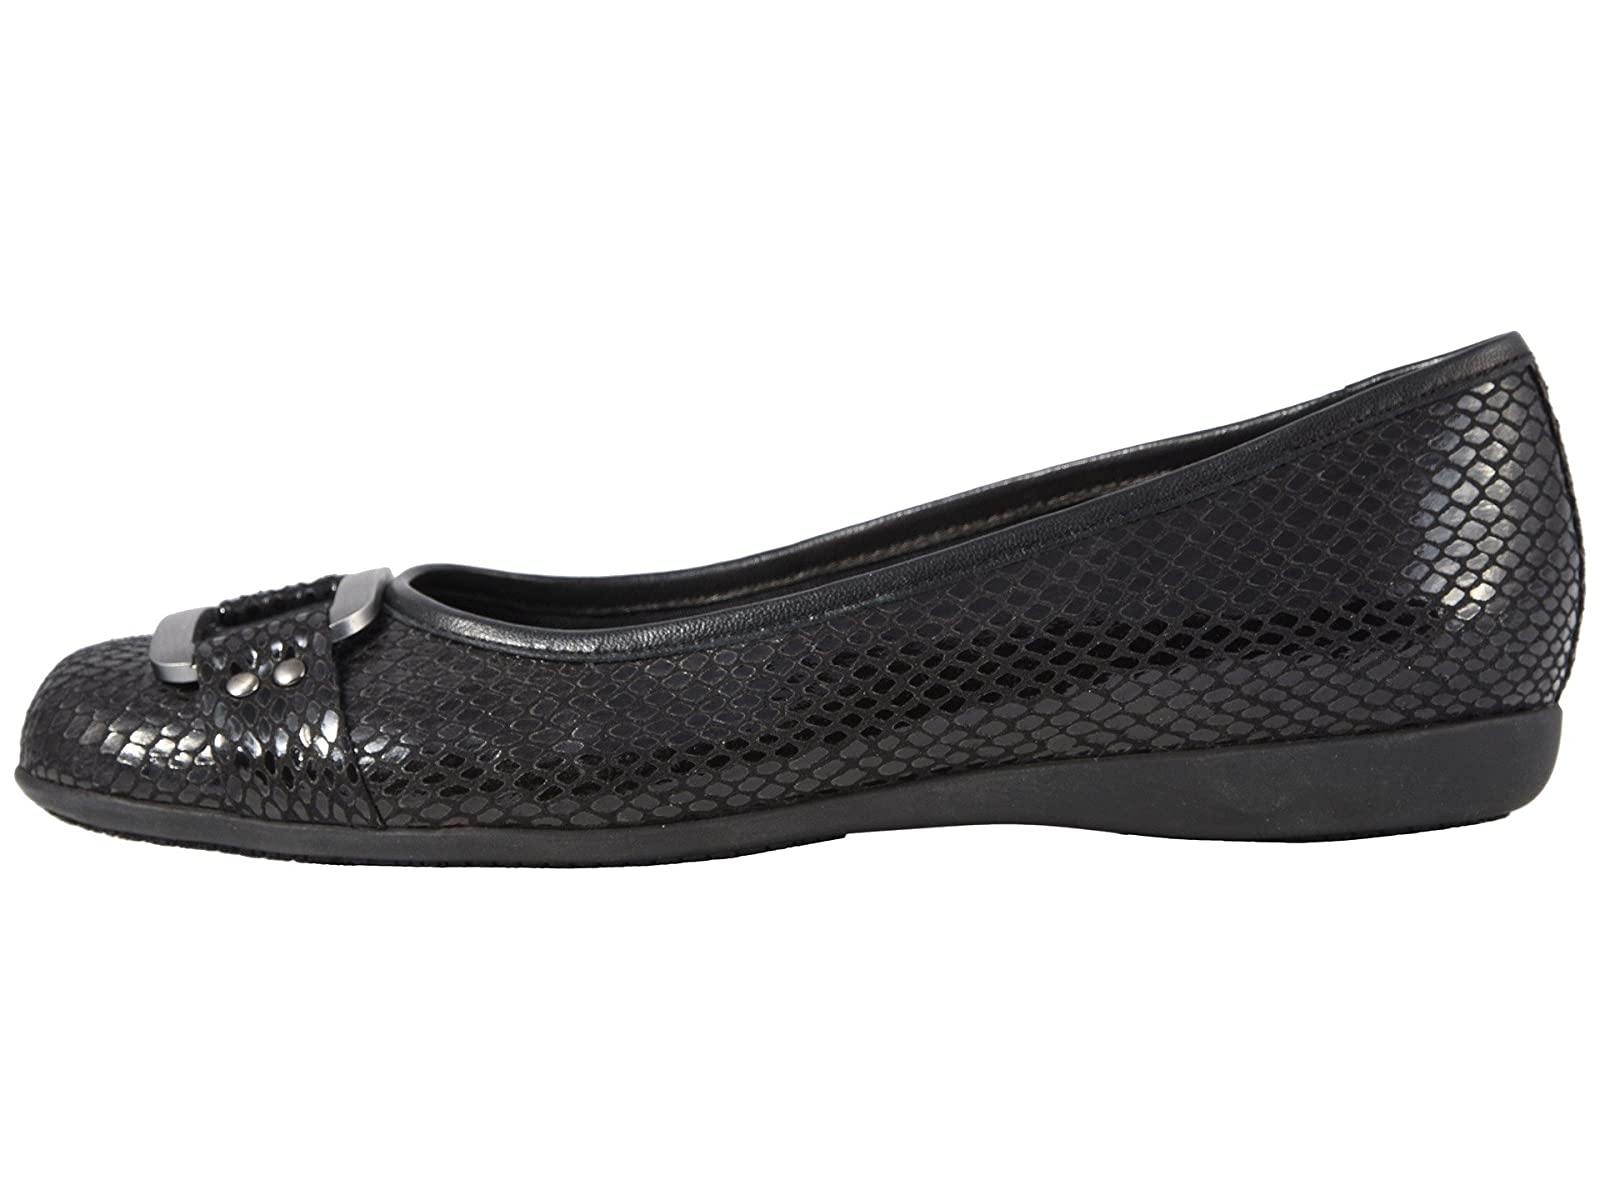 Man's/Woman's Man's/Woman's Man's/Woman's Trotters Sizzle Signature Trendy New a75218